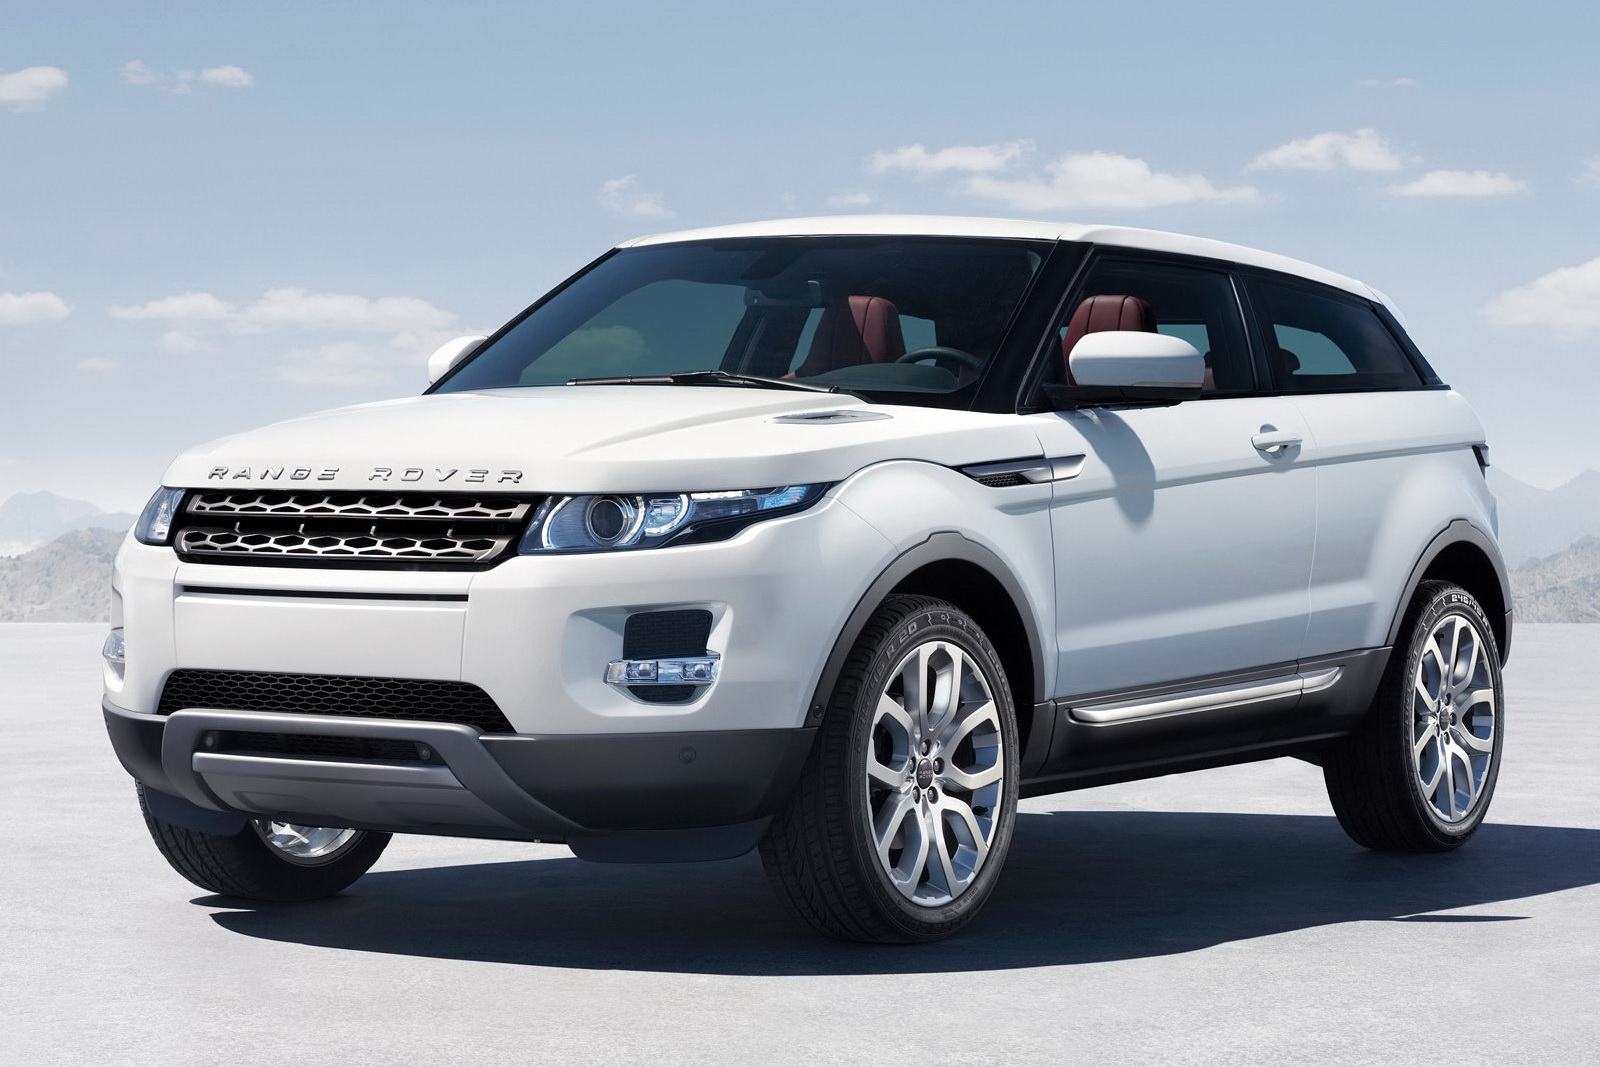 2014 Range Rover Evoque Gets Nine Speed Automatic